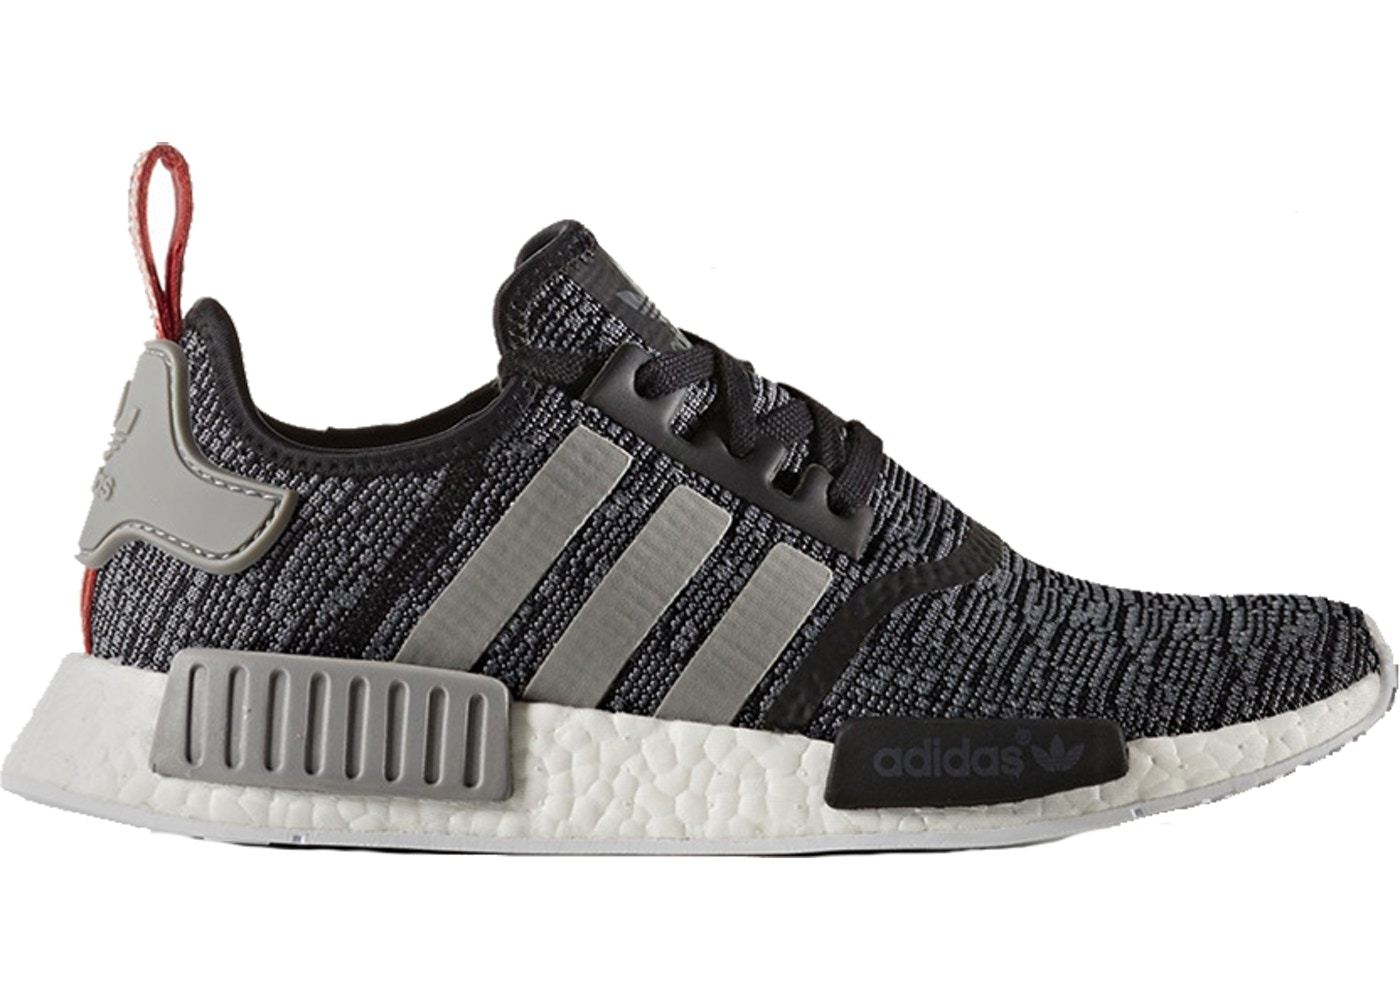 d364ce0652bf3 adidas NMD R1 Glitch Core Black Camo - BB2884